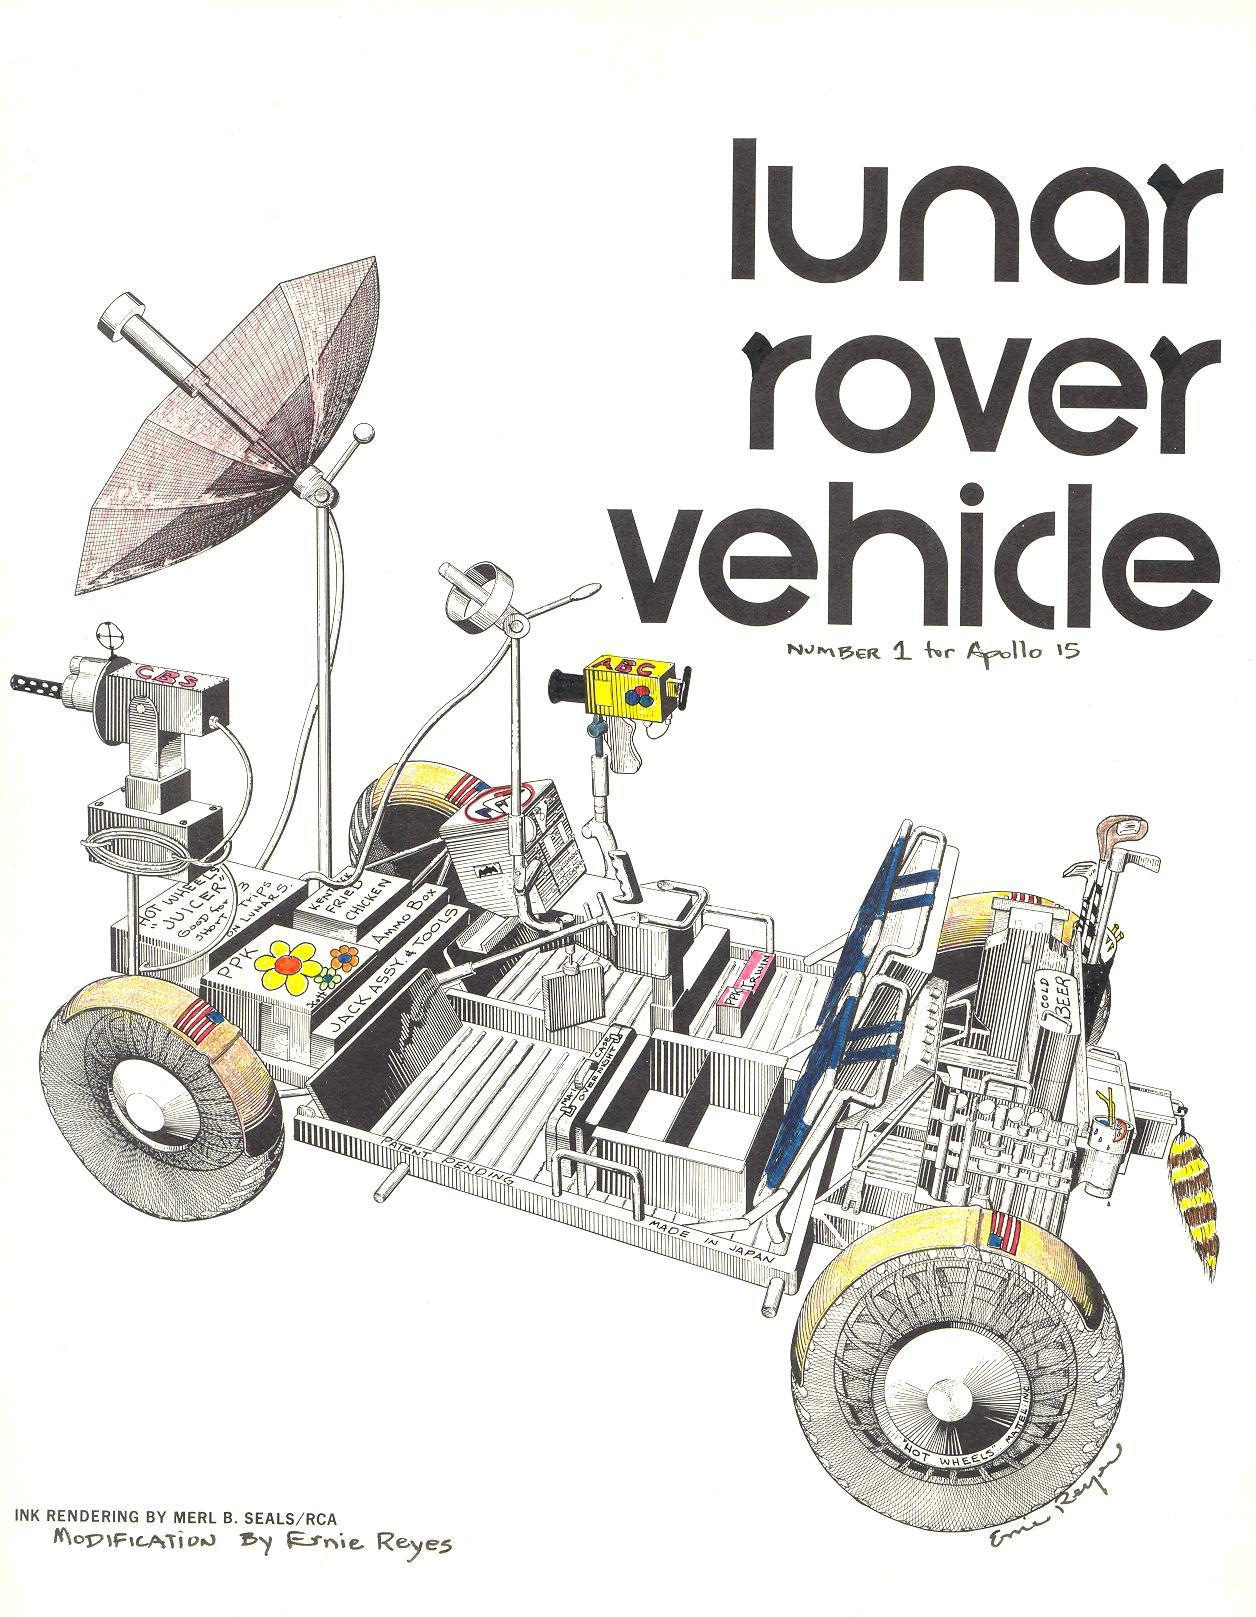 Deploying The Lunar Roving Vehicle Parts Diagram Moreover Simple Car Engine Besides Labeled Ernie Reyes Drawing Of